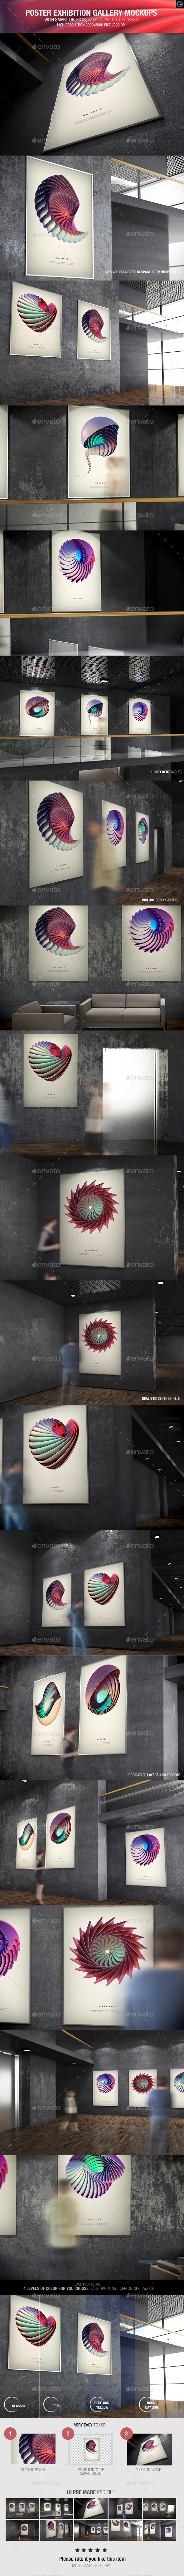 GraphicRiver Poster Exhibition Gallery Mockups 9426620